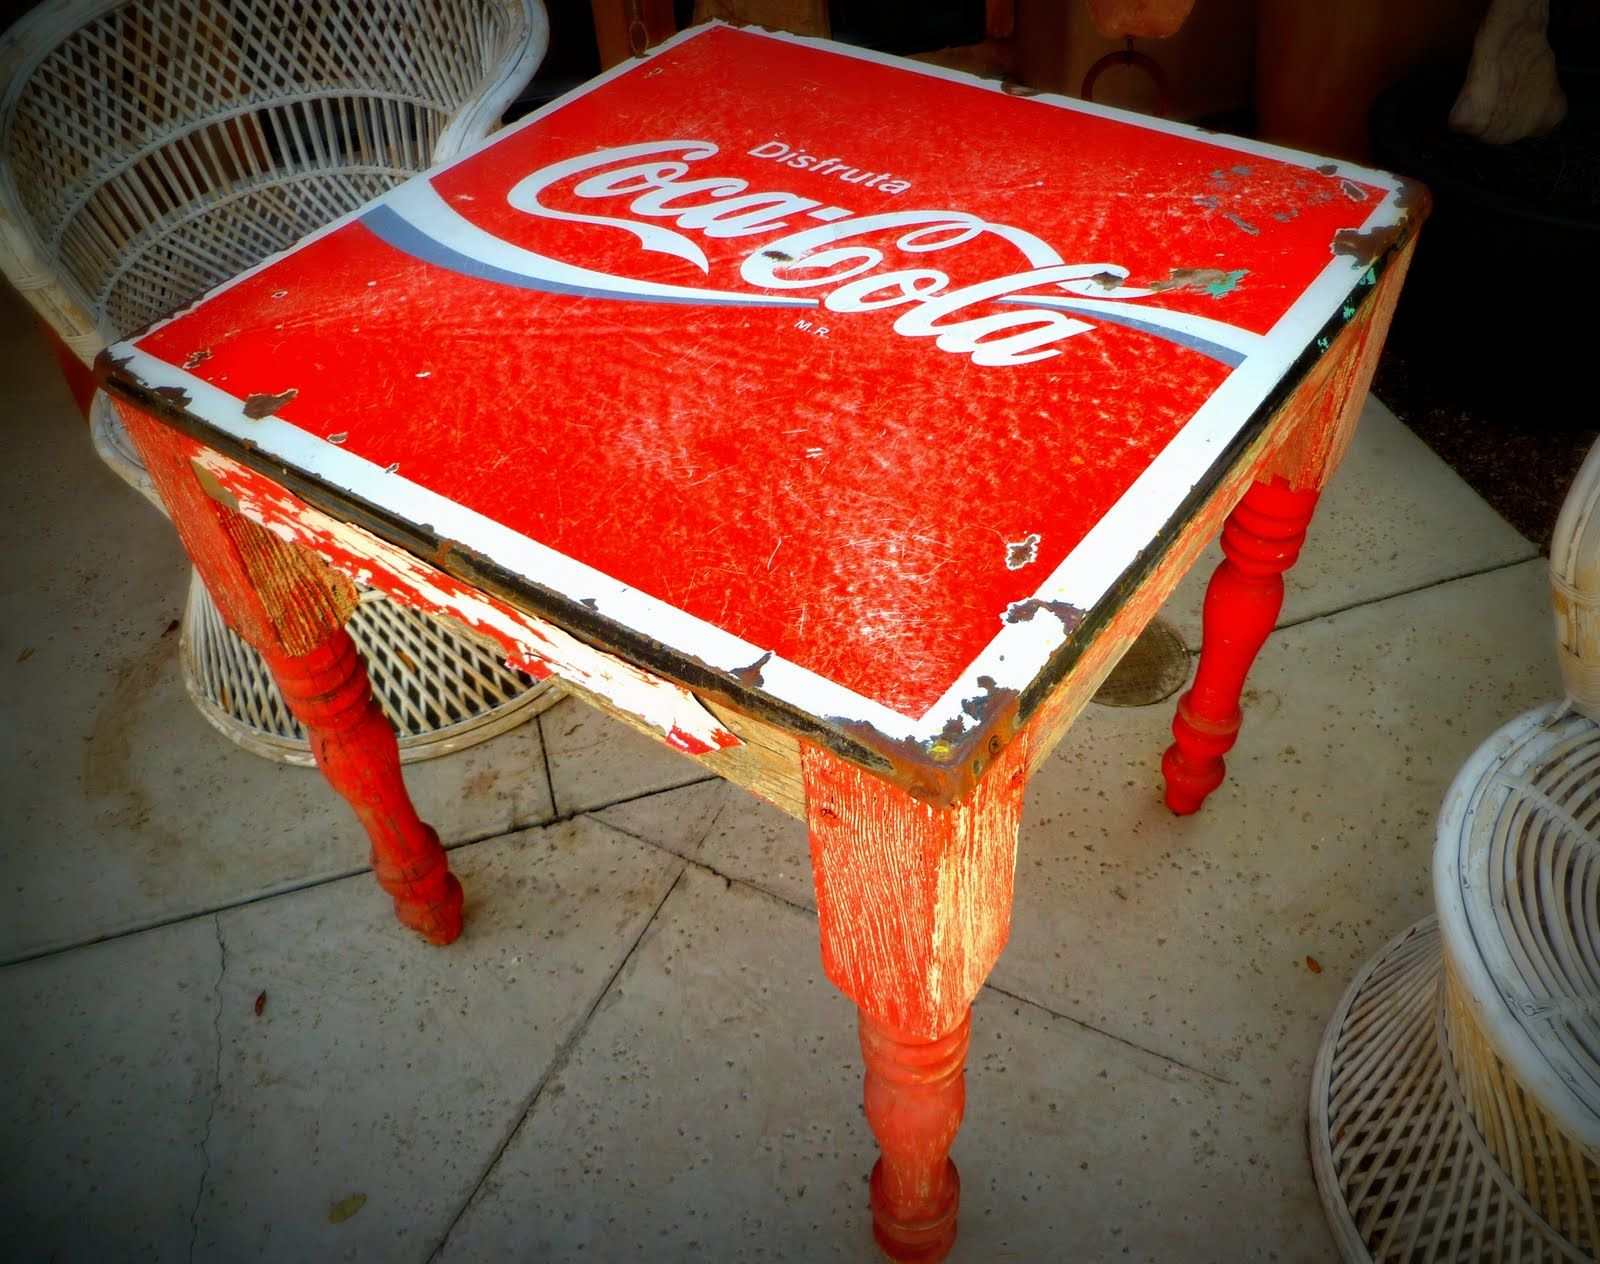 I love this old Mexican Coca Cola table It looks like a marriage